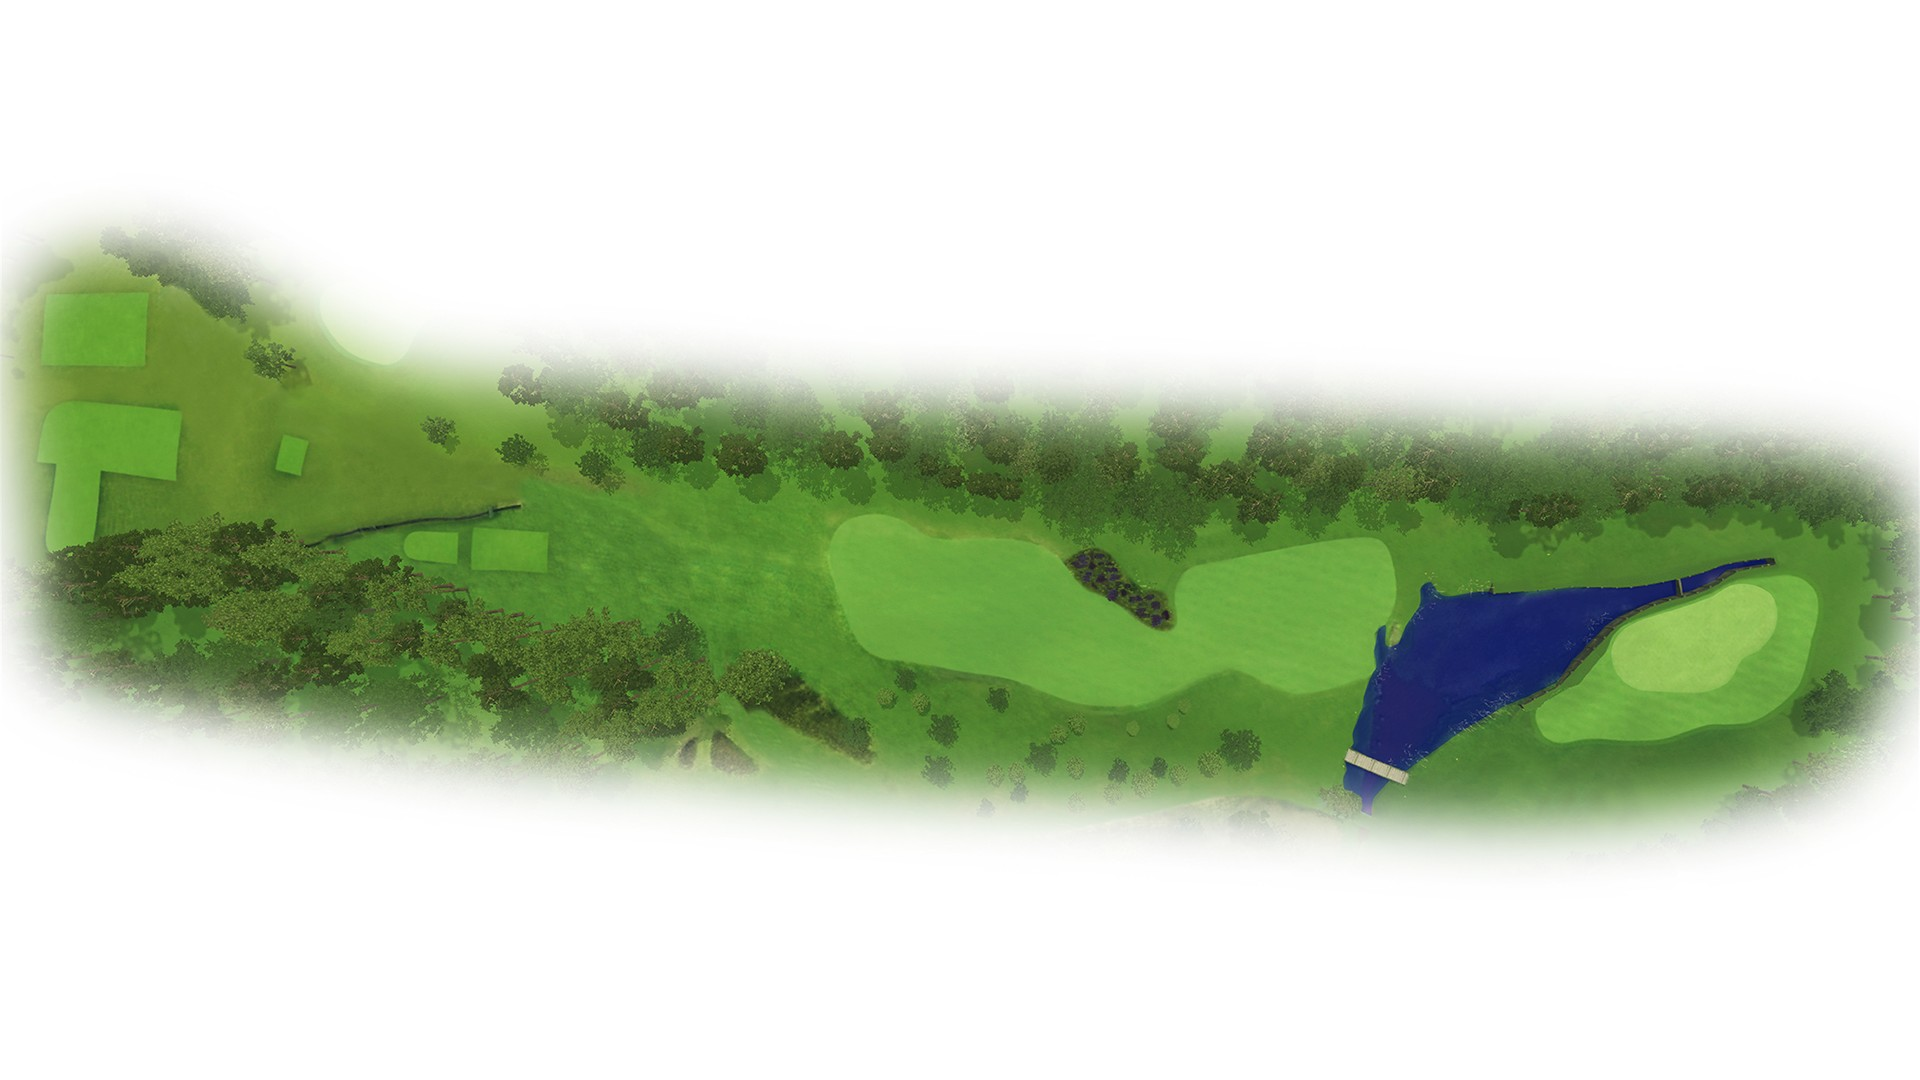 Wentworth, West Course, Hole 8 changes